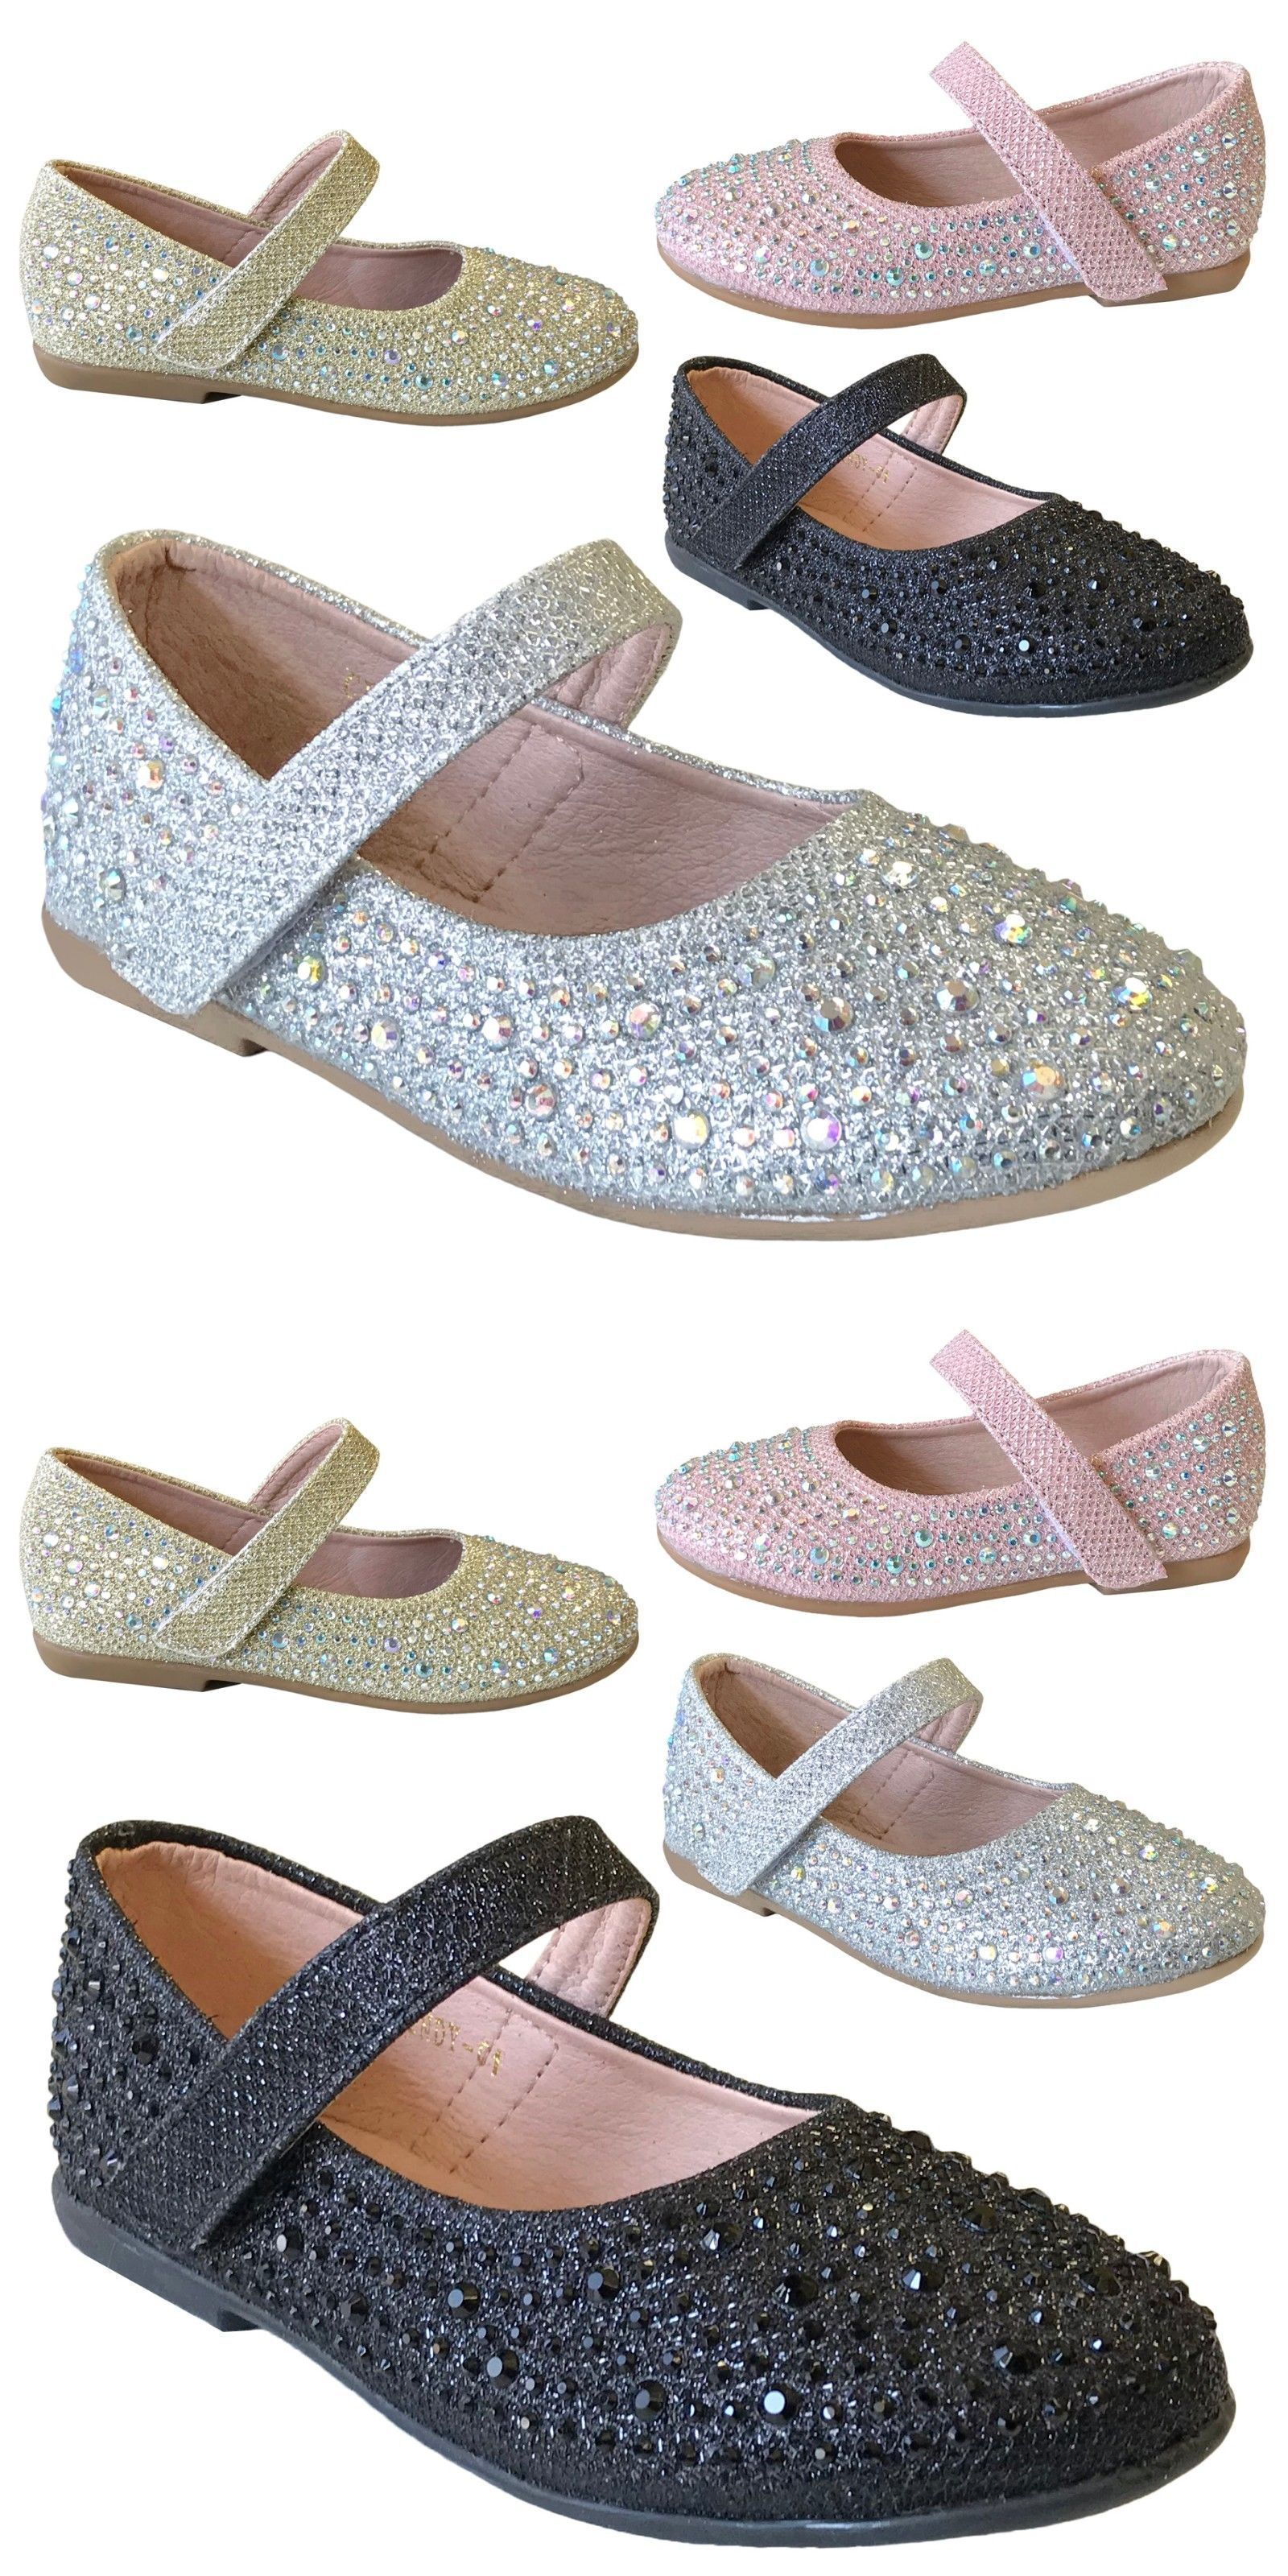 408d3f67d Baby Shoes 147285  New Girls Rhinestone Flats Round Toe Mary Jane Strap  Shoe Baby Toddler Kids 5-12 -  BUY IT NOW ONLY   15.95 on  eBay  shoes   girls ...